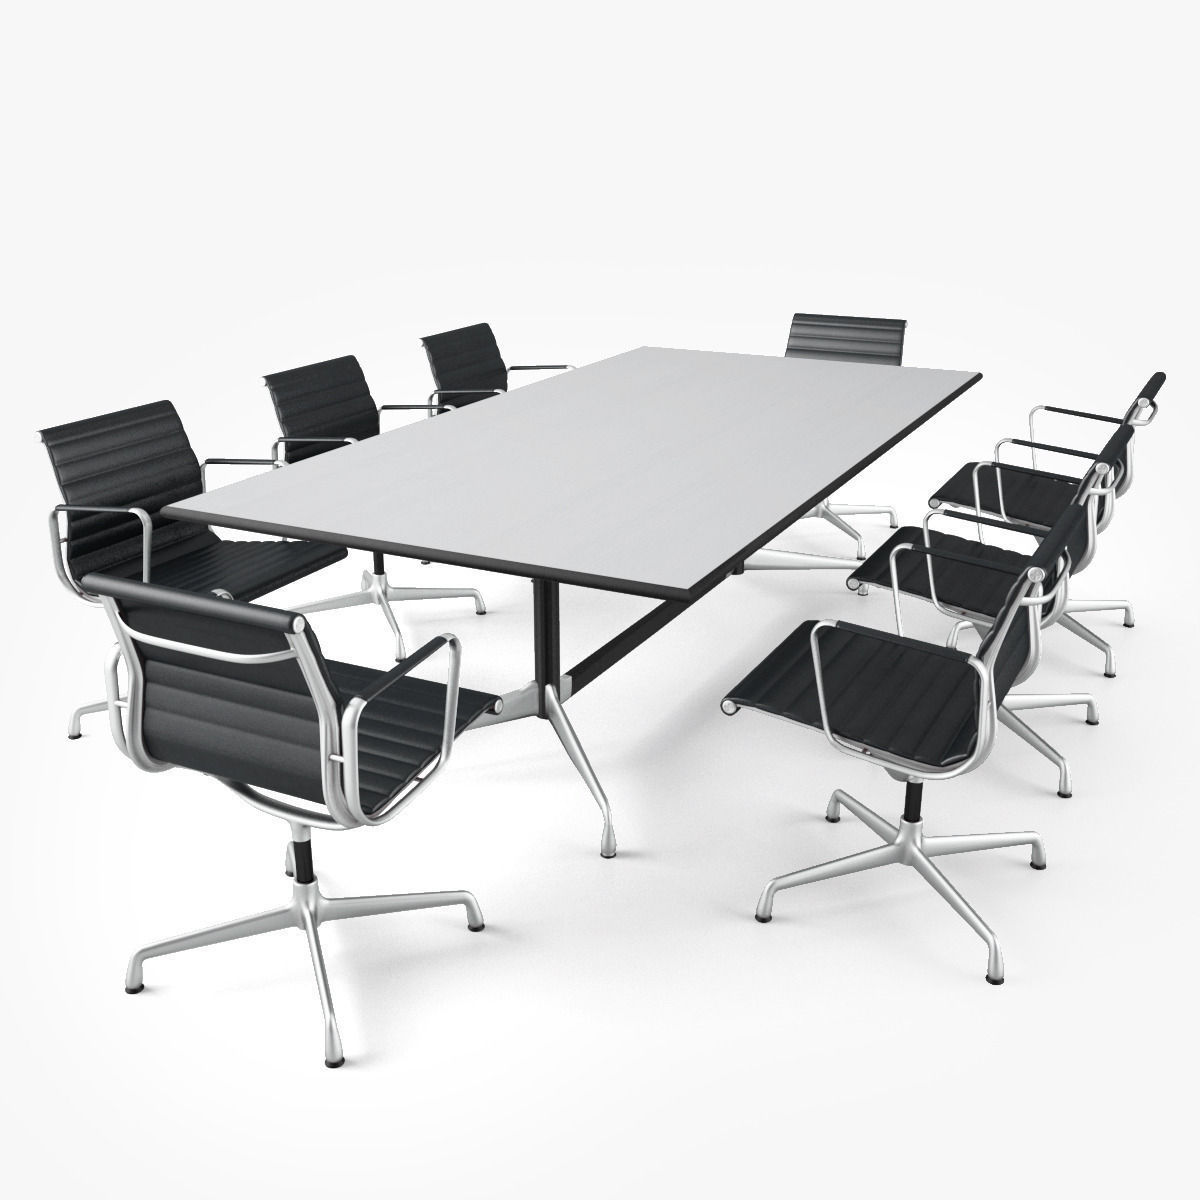 Meeting room furniture 01 3d model max obj fbx mat 1  Meeting Room Furniture 01 3D   CGTrader. Meeting Room Table And Chairs. Home Design Ideas